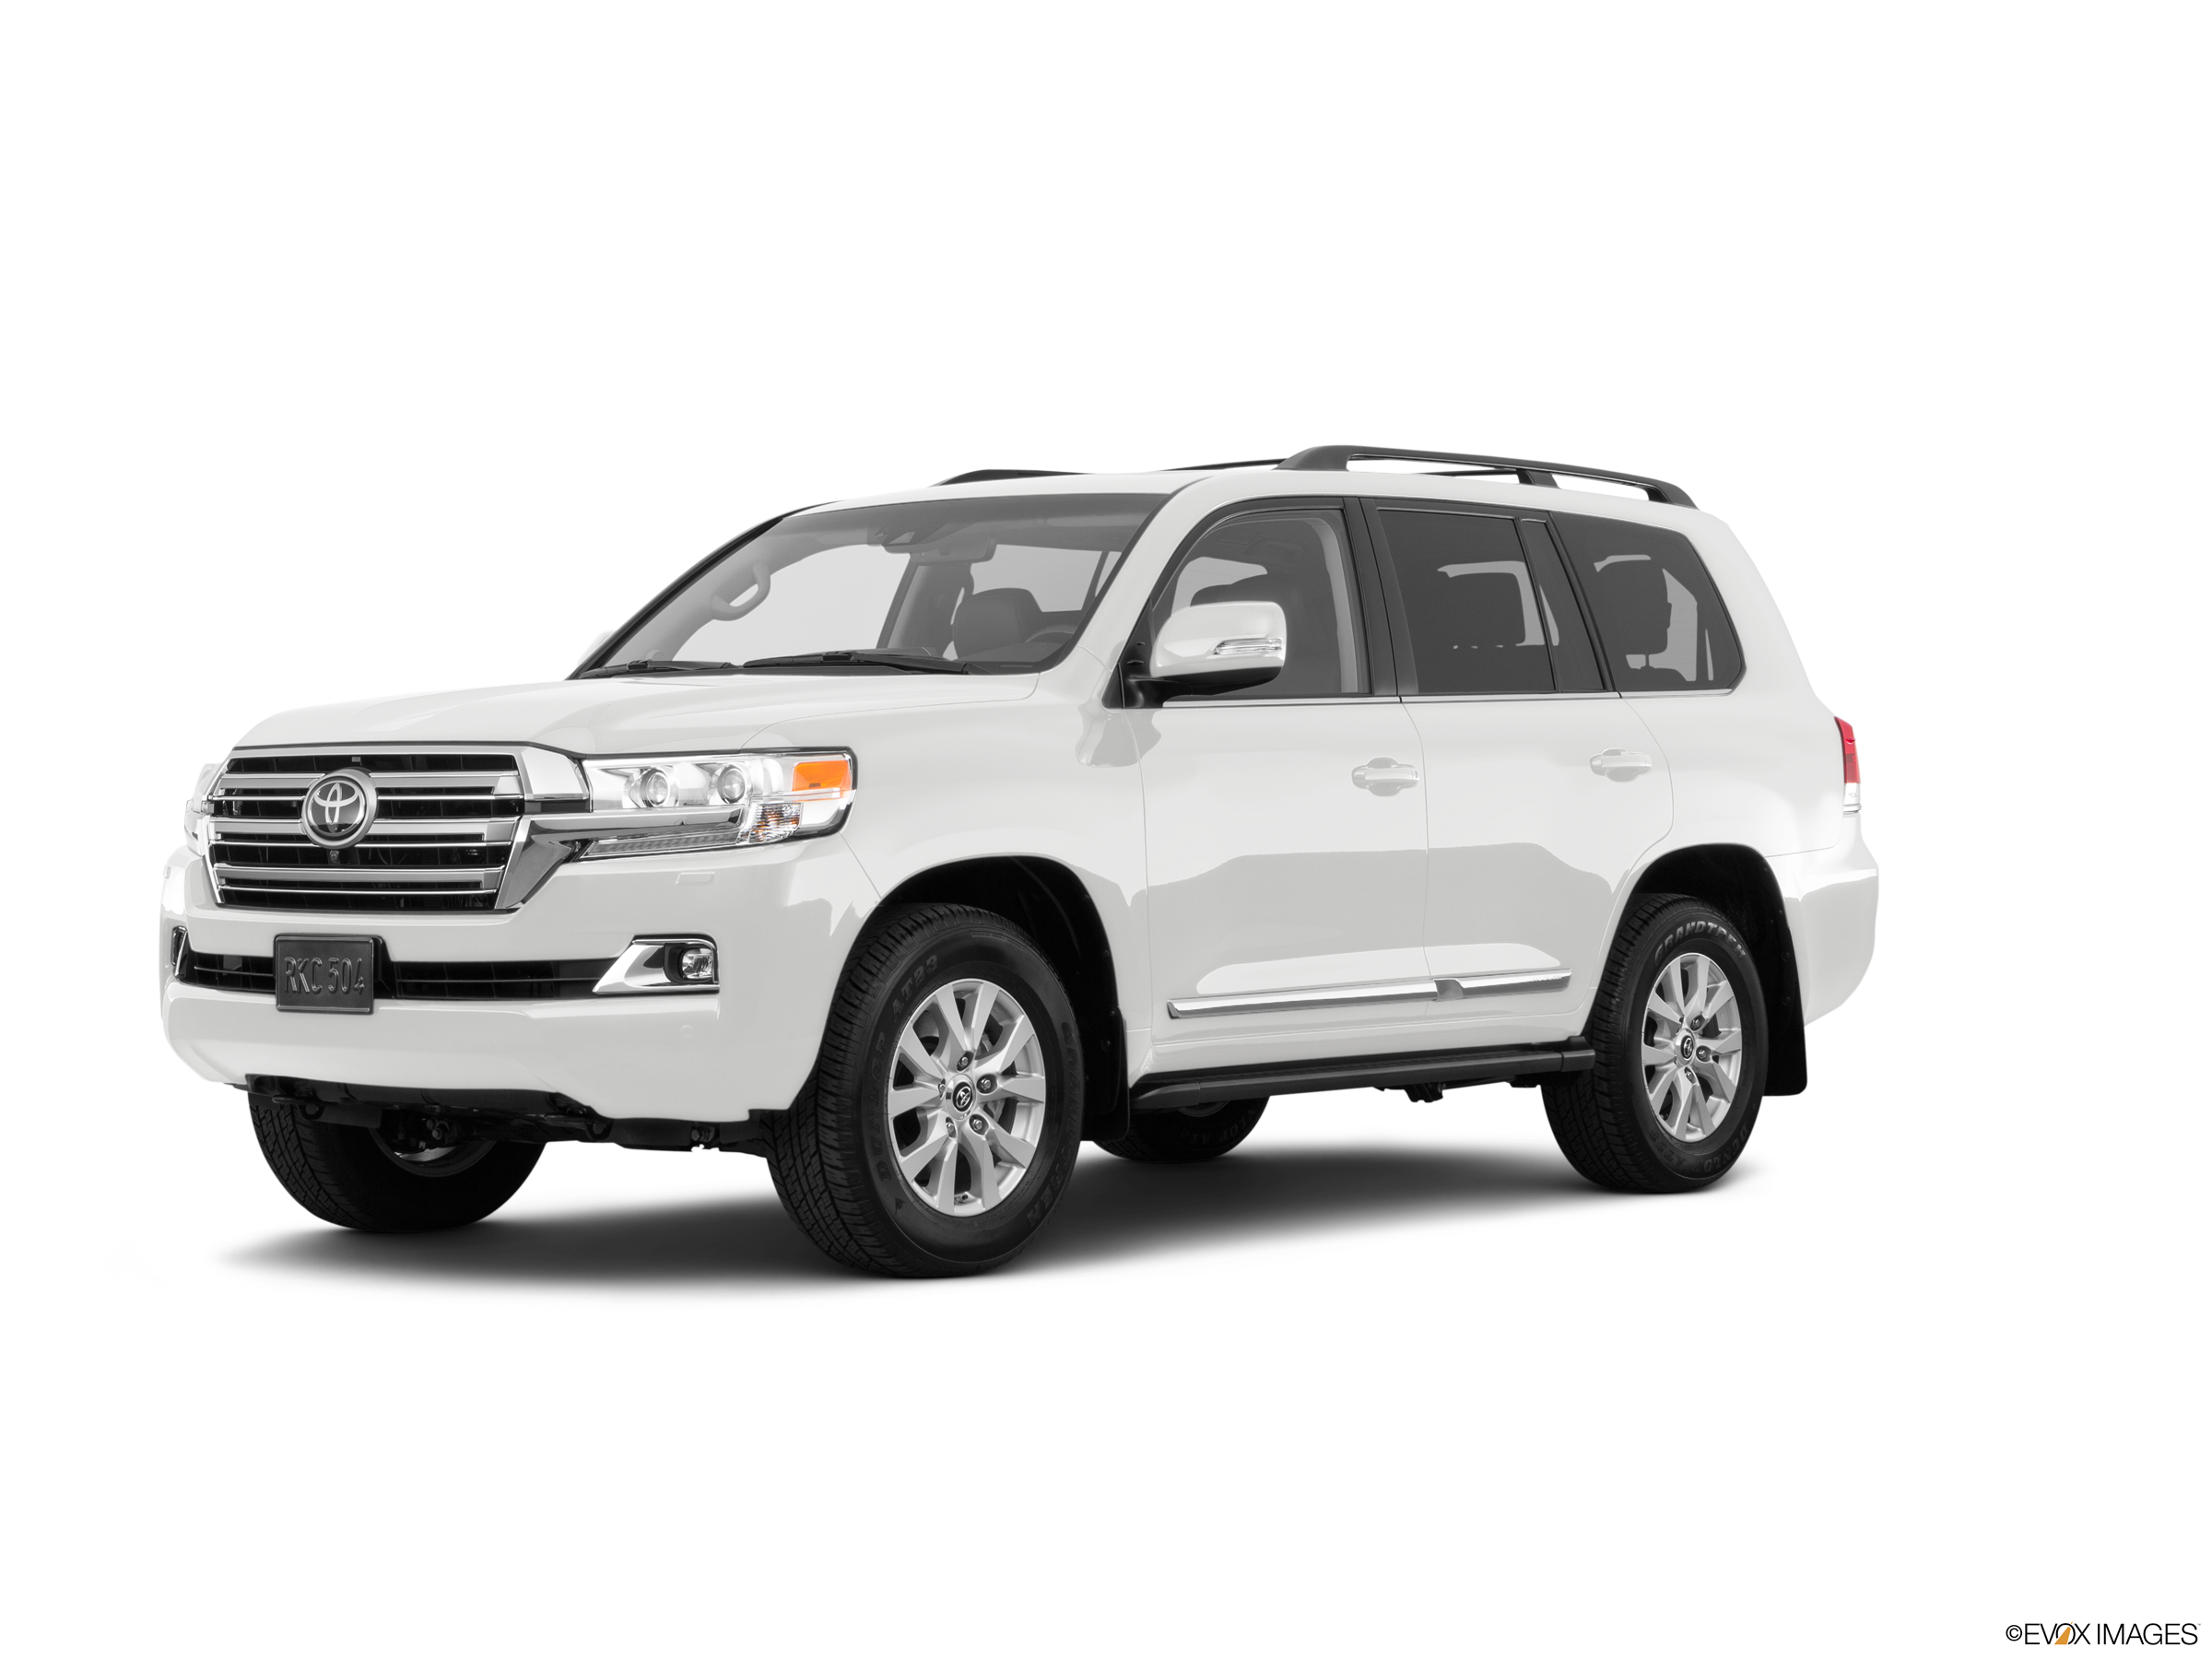 Used 2018 Toyota Land Cruiser Values Cars For Sale Kelley Blue Book